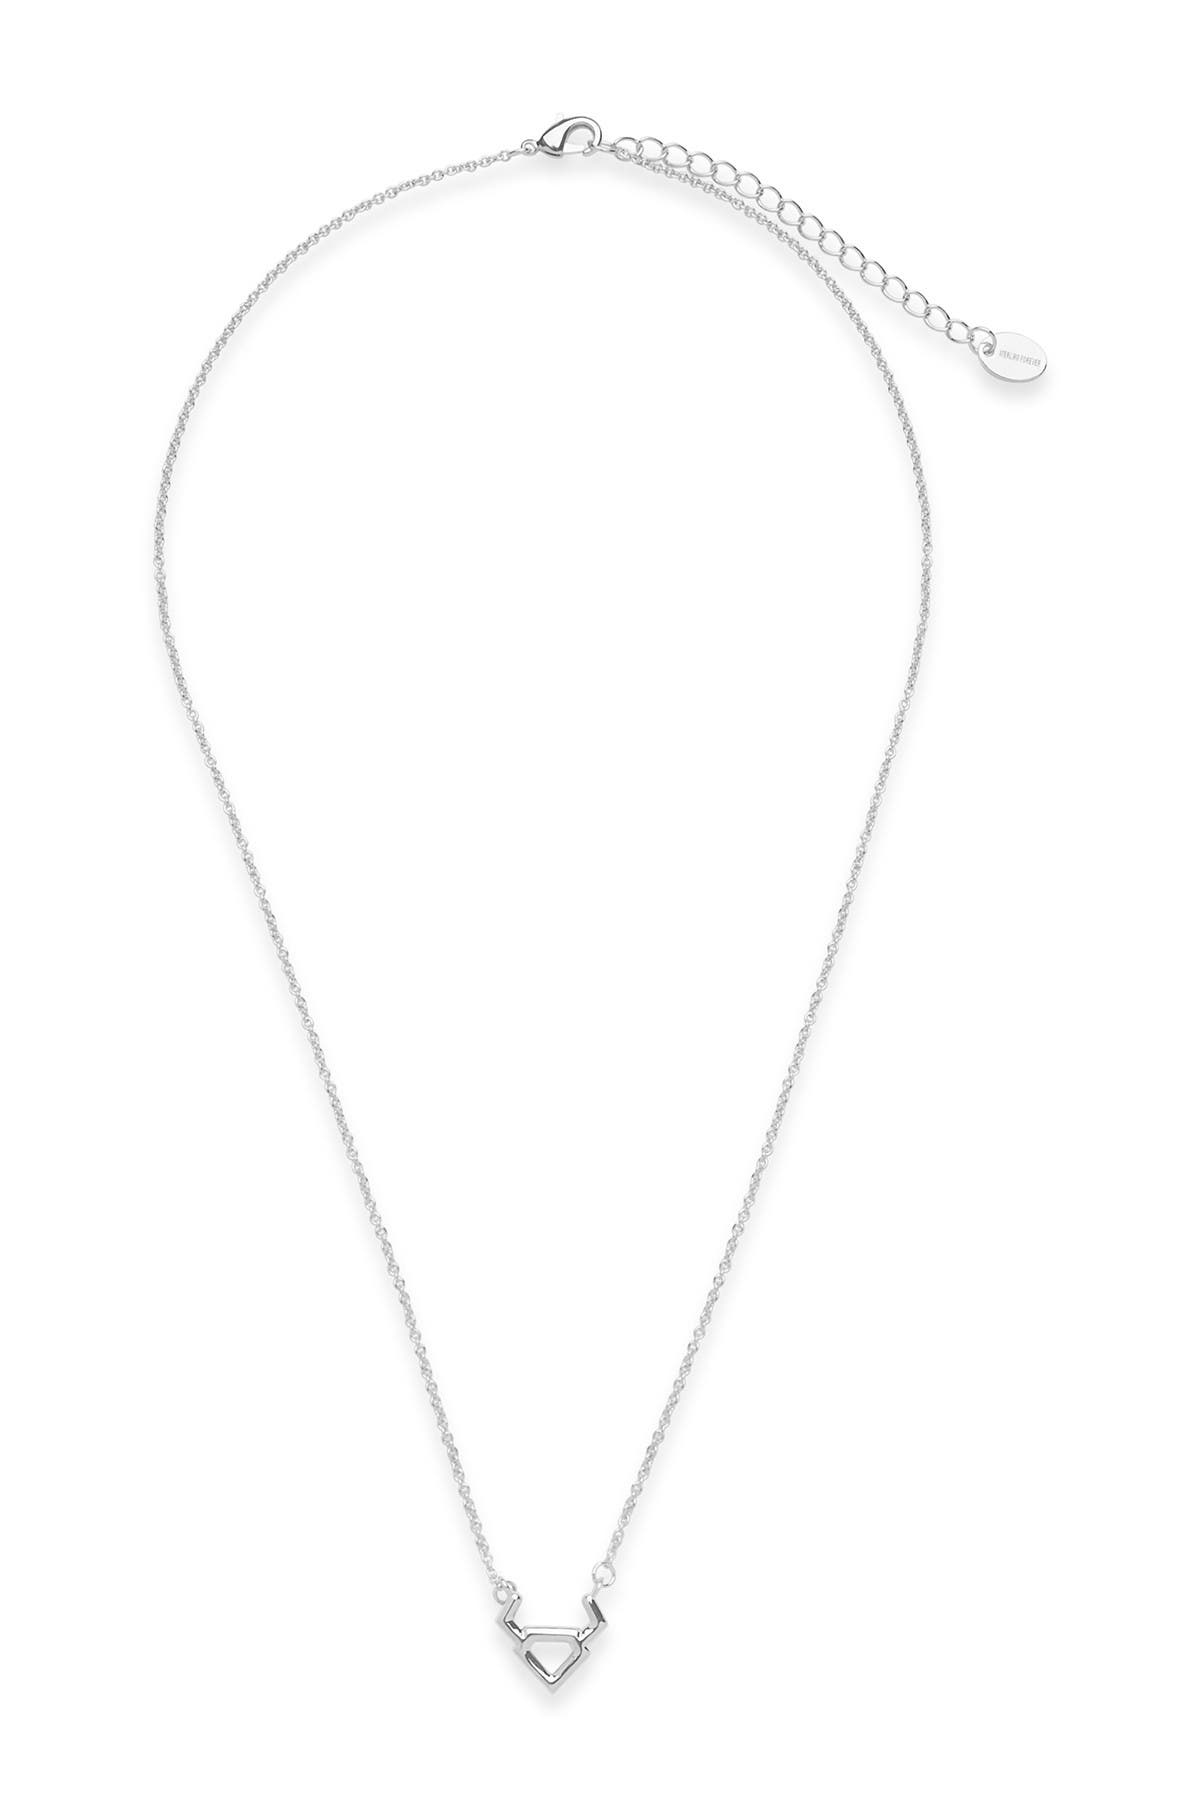 Sterling Forever Rhodium Plated Zodiac Pendant Necklace - Taurus